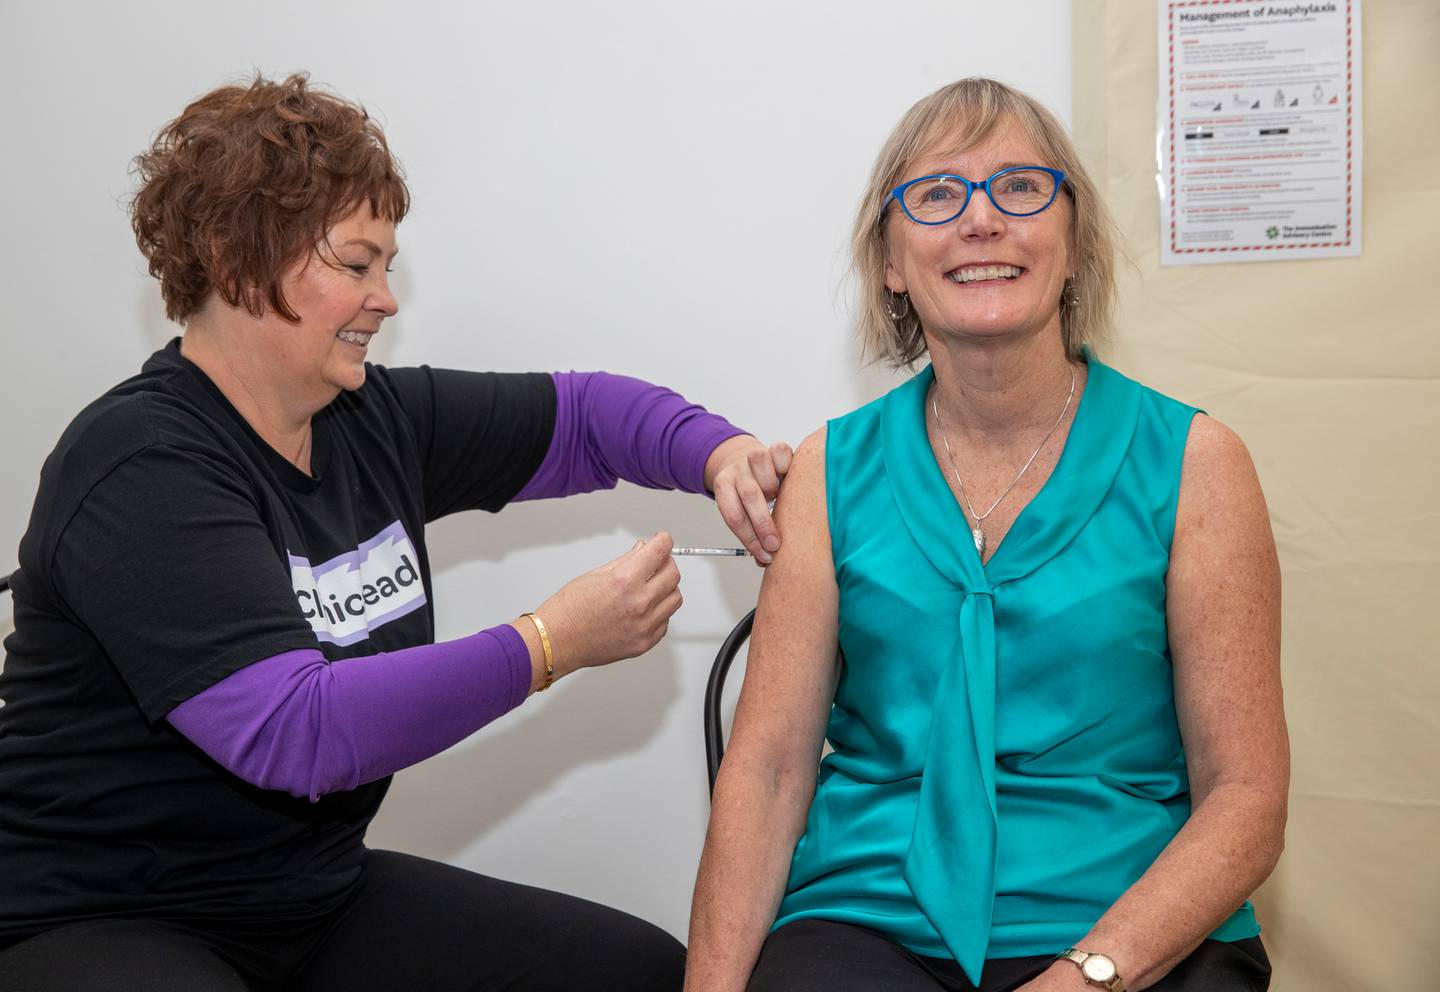 Dr Nikki Turner, seen here receiving the Pfizer Covid-19 vaccine from clinical lead Johanna Fowler at the Community Vaccination Centre in Wellington. Photo / Mark Mitchell